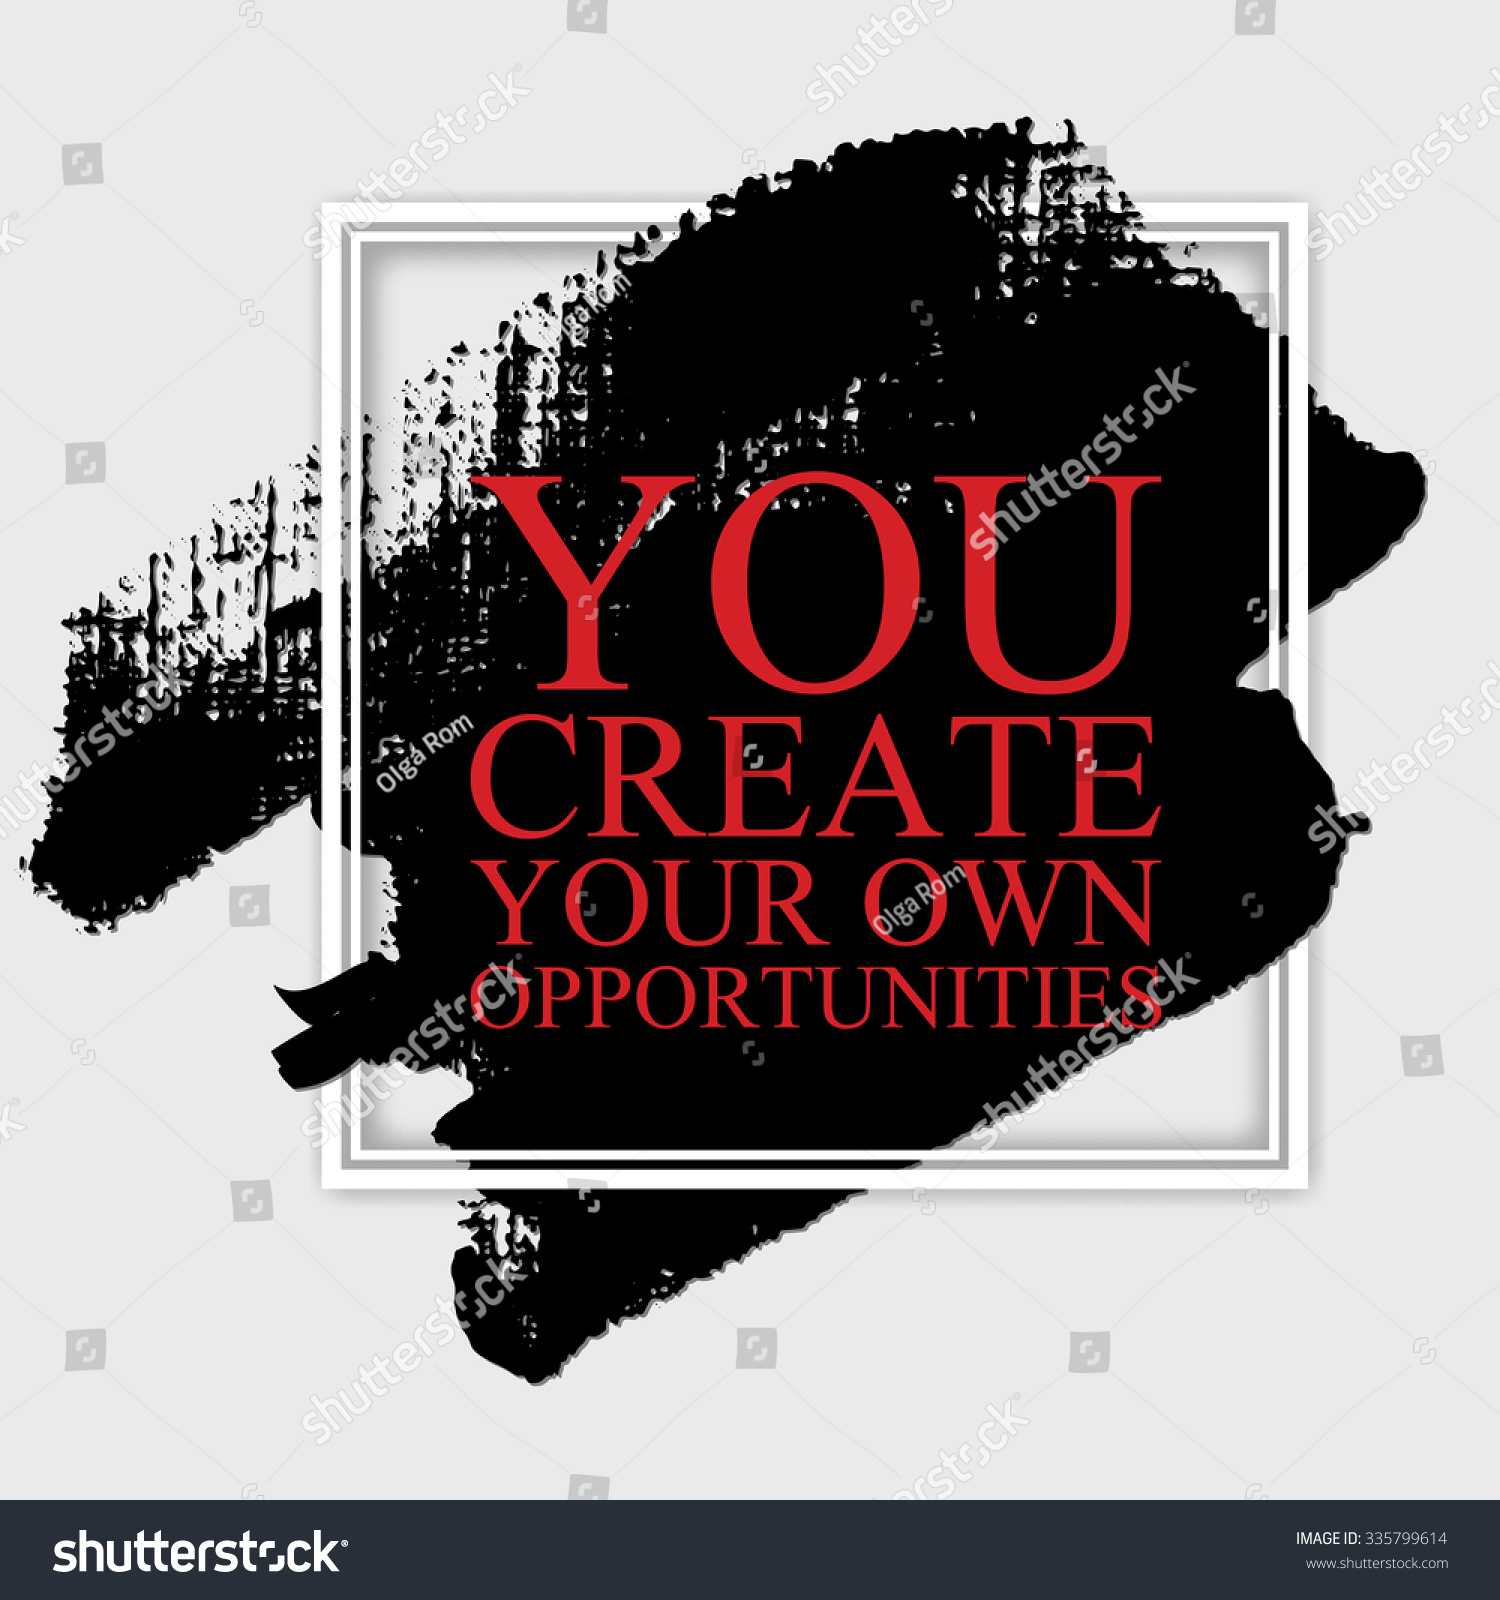 Inspirational Quotes Motivation: You Create Your Own Opportunities